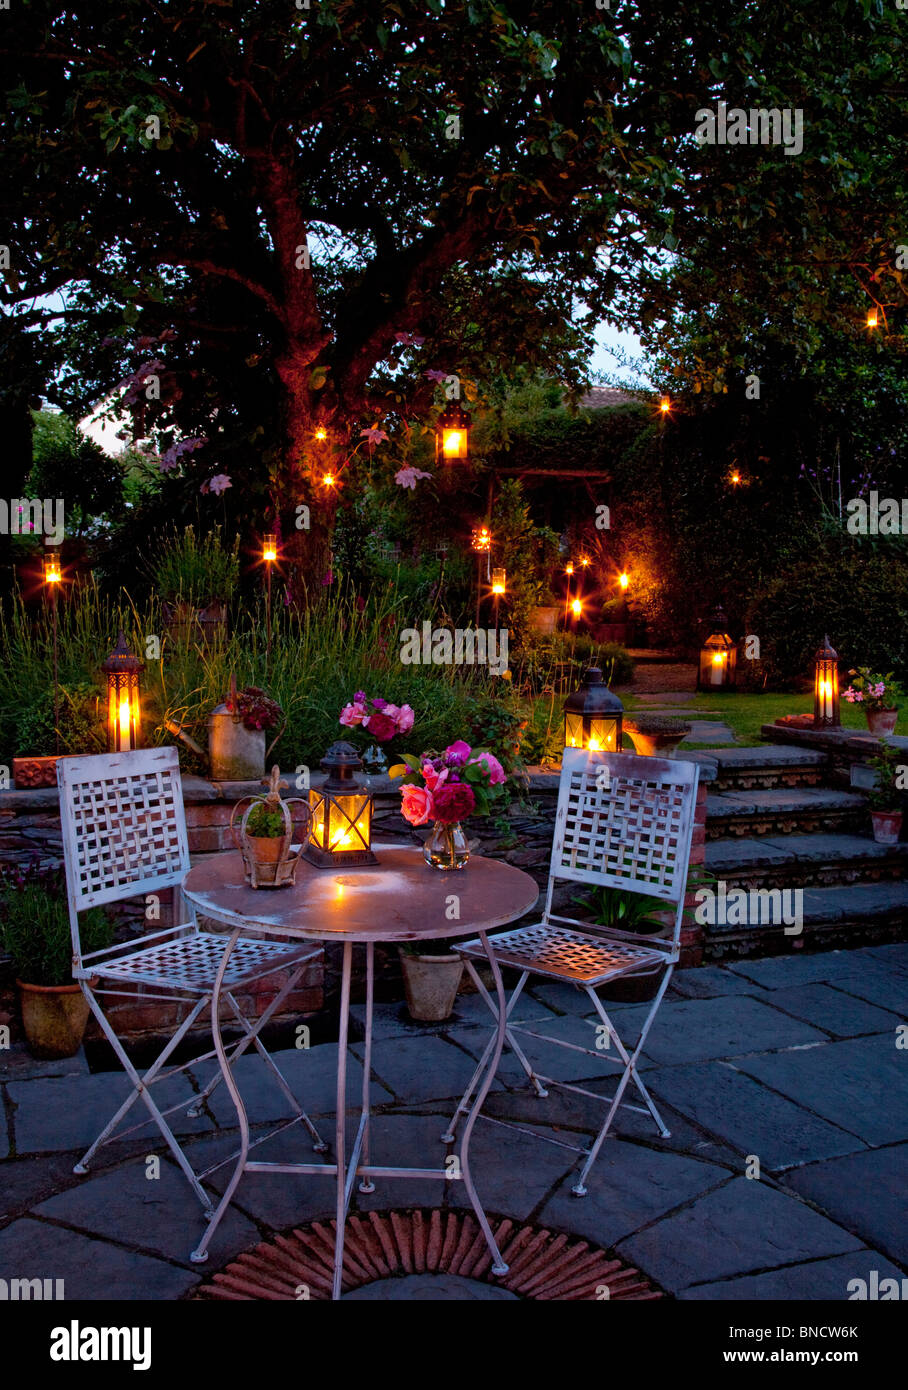 Metal Table And Chairs On Patio With Candles And Lanterns